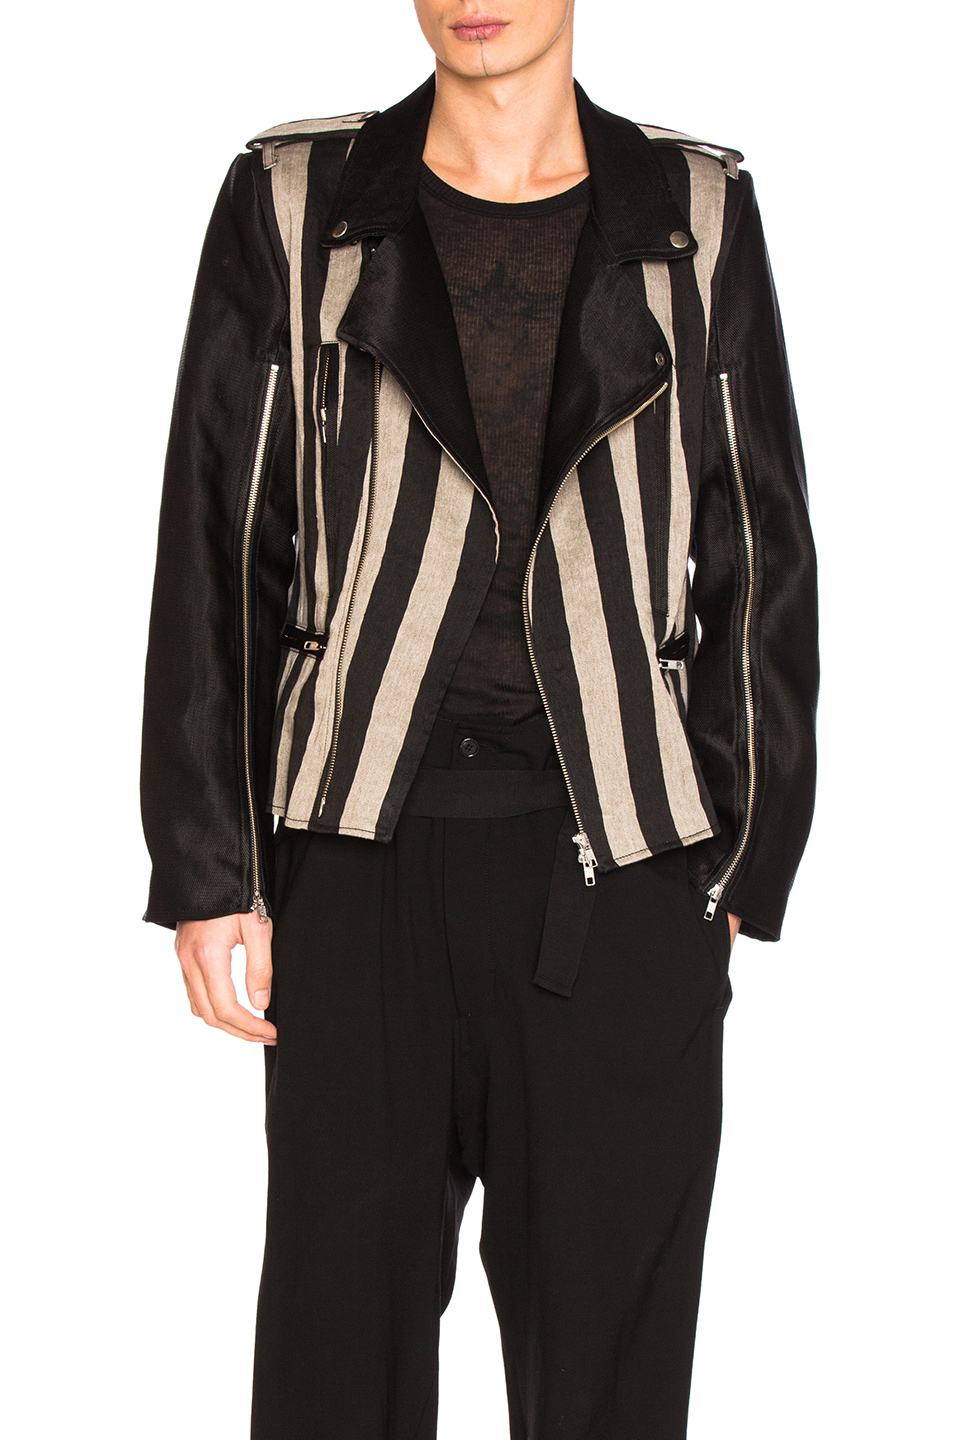 Ann Demeulemeester Blouson in Black,Stripes